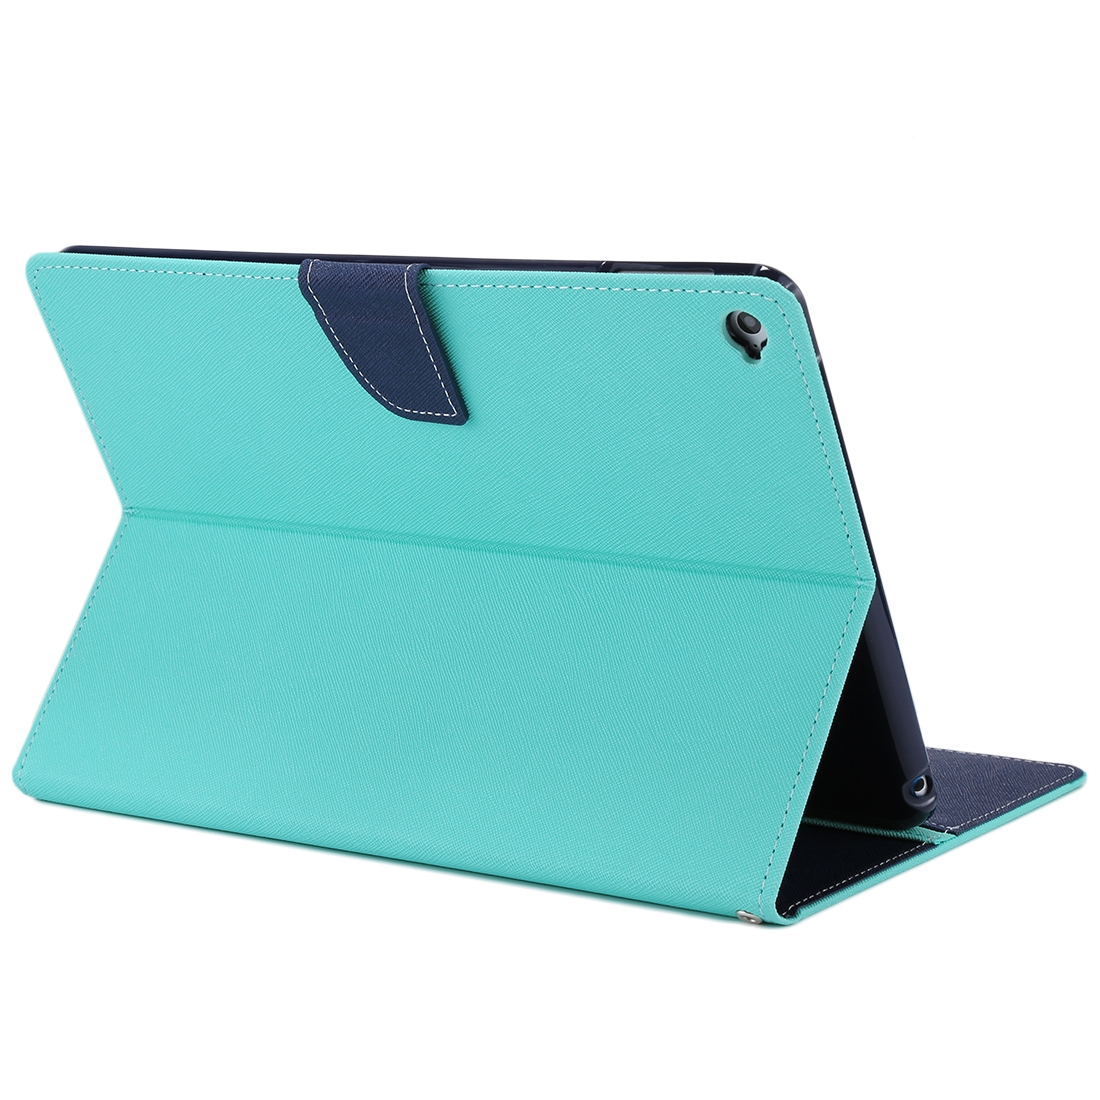 iPad Air 2 Case Cross Texture Leather Case with Holder & Slim Profile (Mint Green)